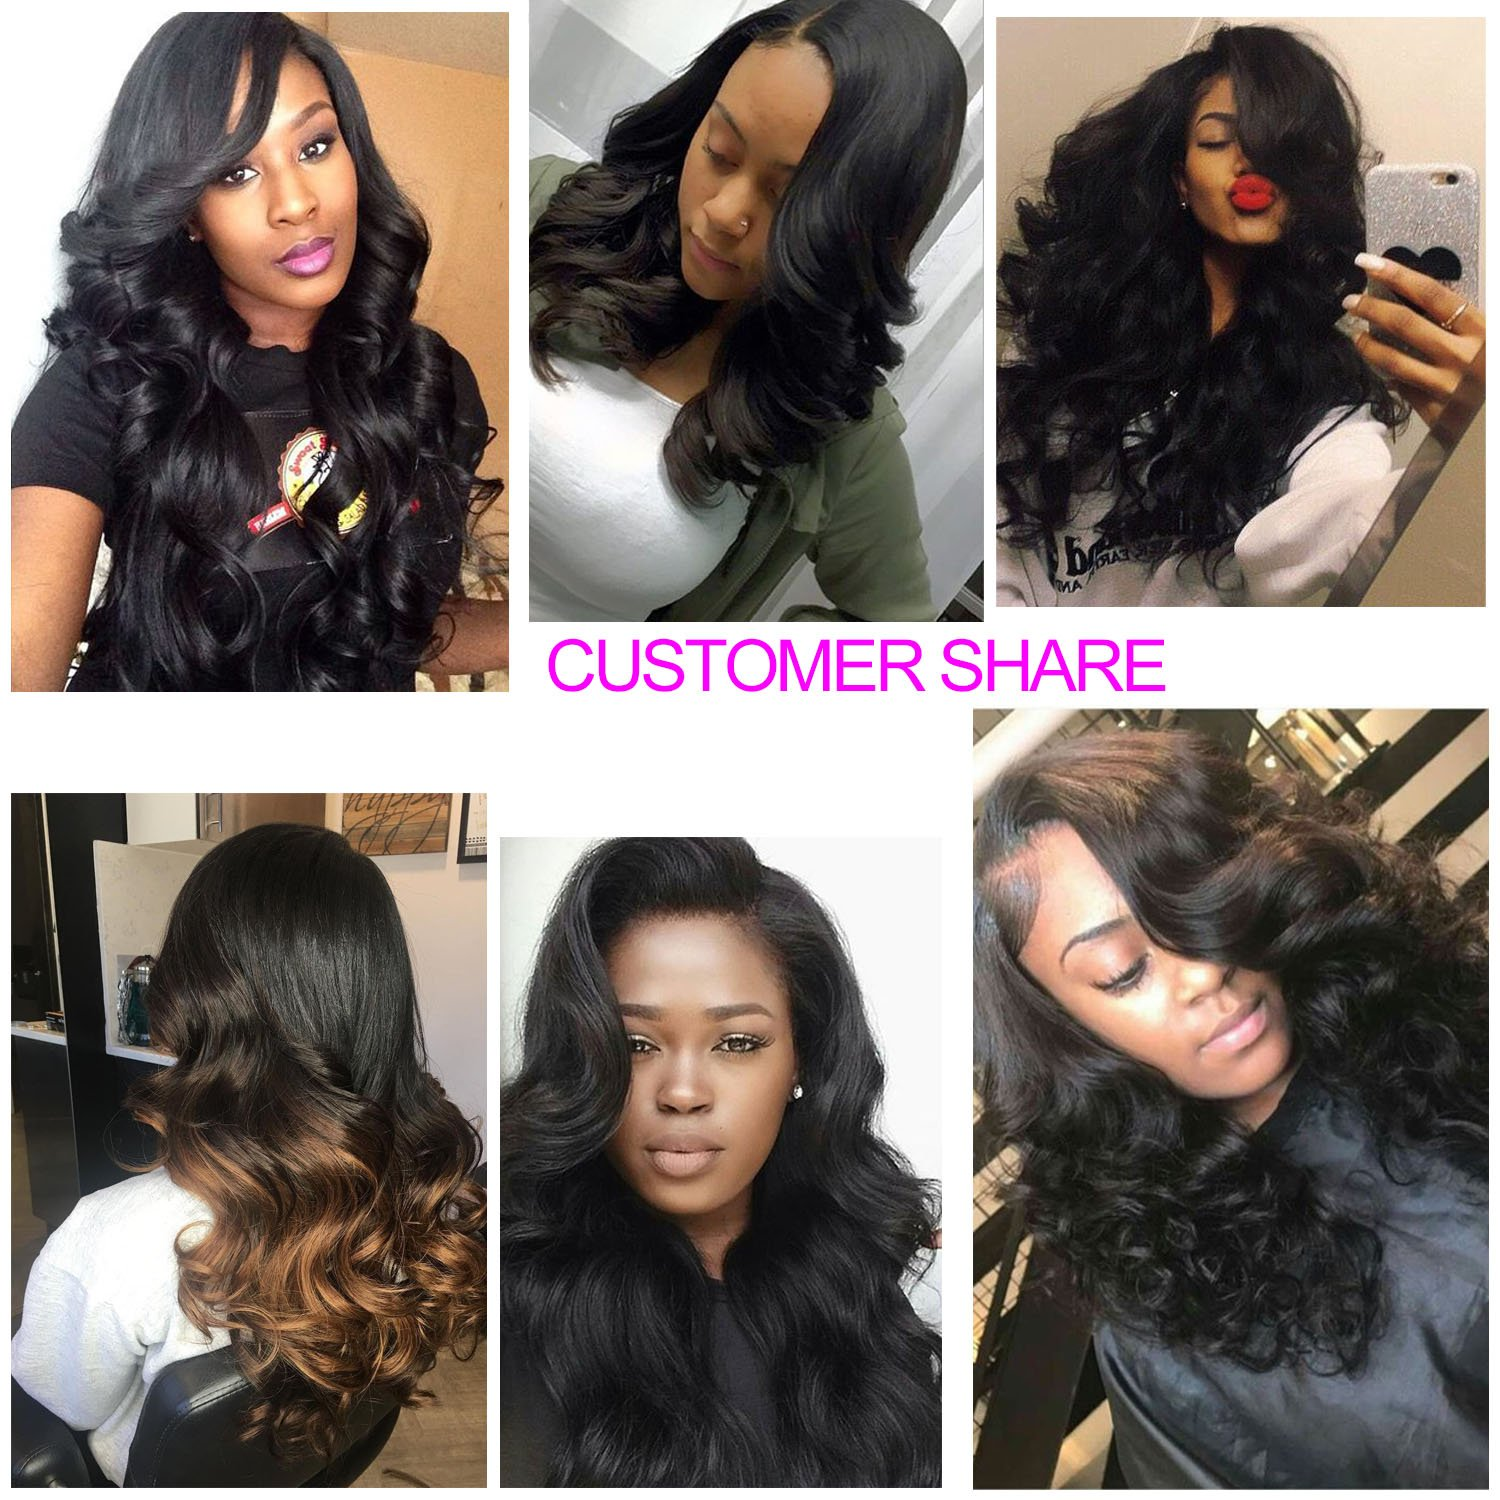 Lace Wigs Hair Extensions & Wigs Maxglam Full Lace Human Hair Wigs With Baby Hair Brazilian Straight Remy Hair Lace Wig For Afro American Free Shipping Fragrant Aroma